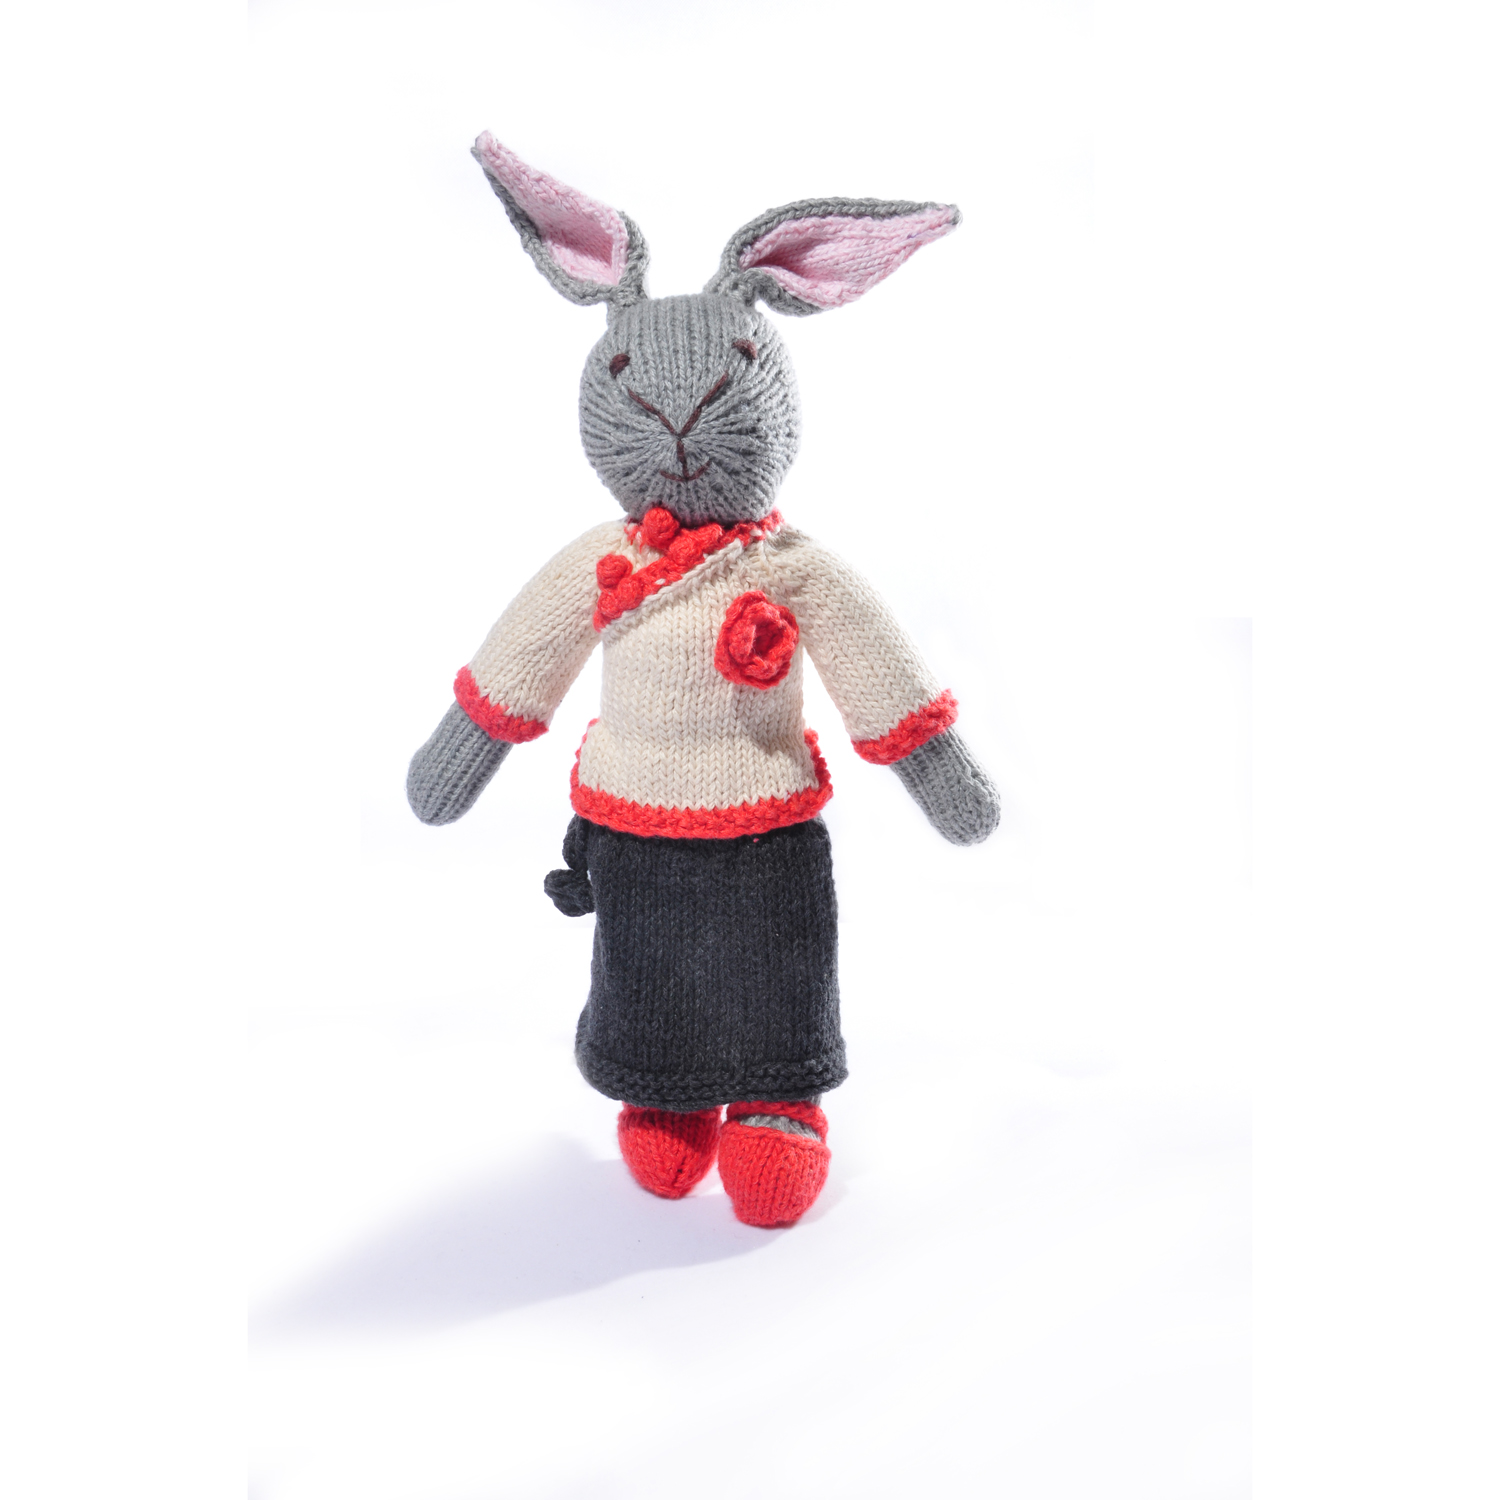 Rabbit Soft Toy in Changeable Outfit - Black/Cream